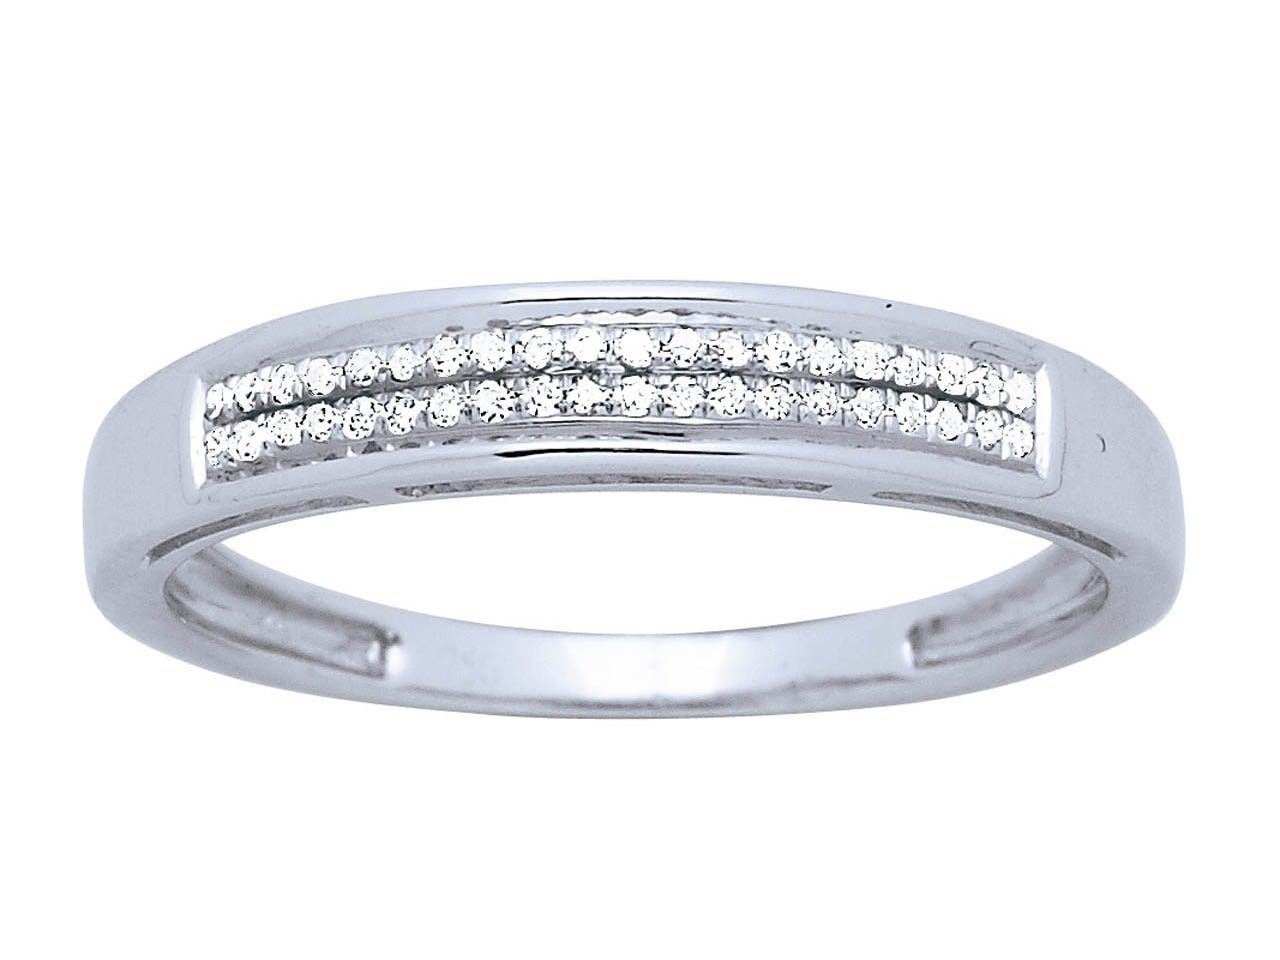 Bague alliance serti 2 rangs, Or gris, diamants 0,08 ct